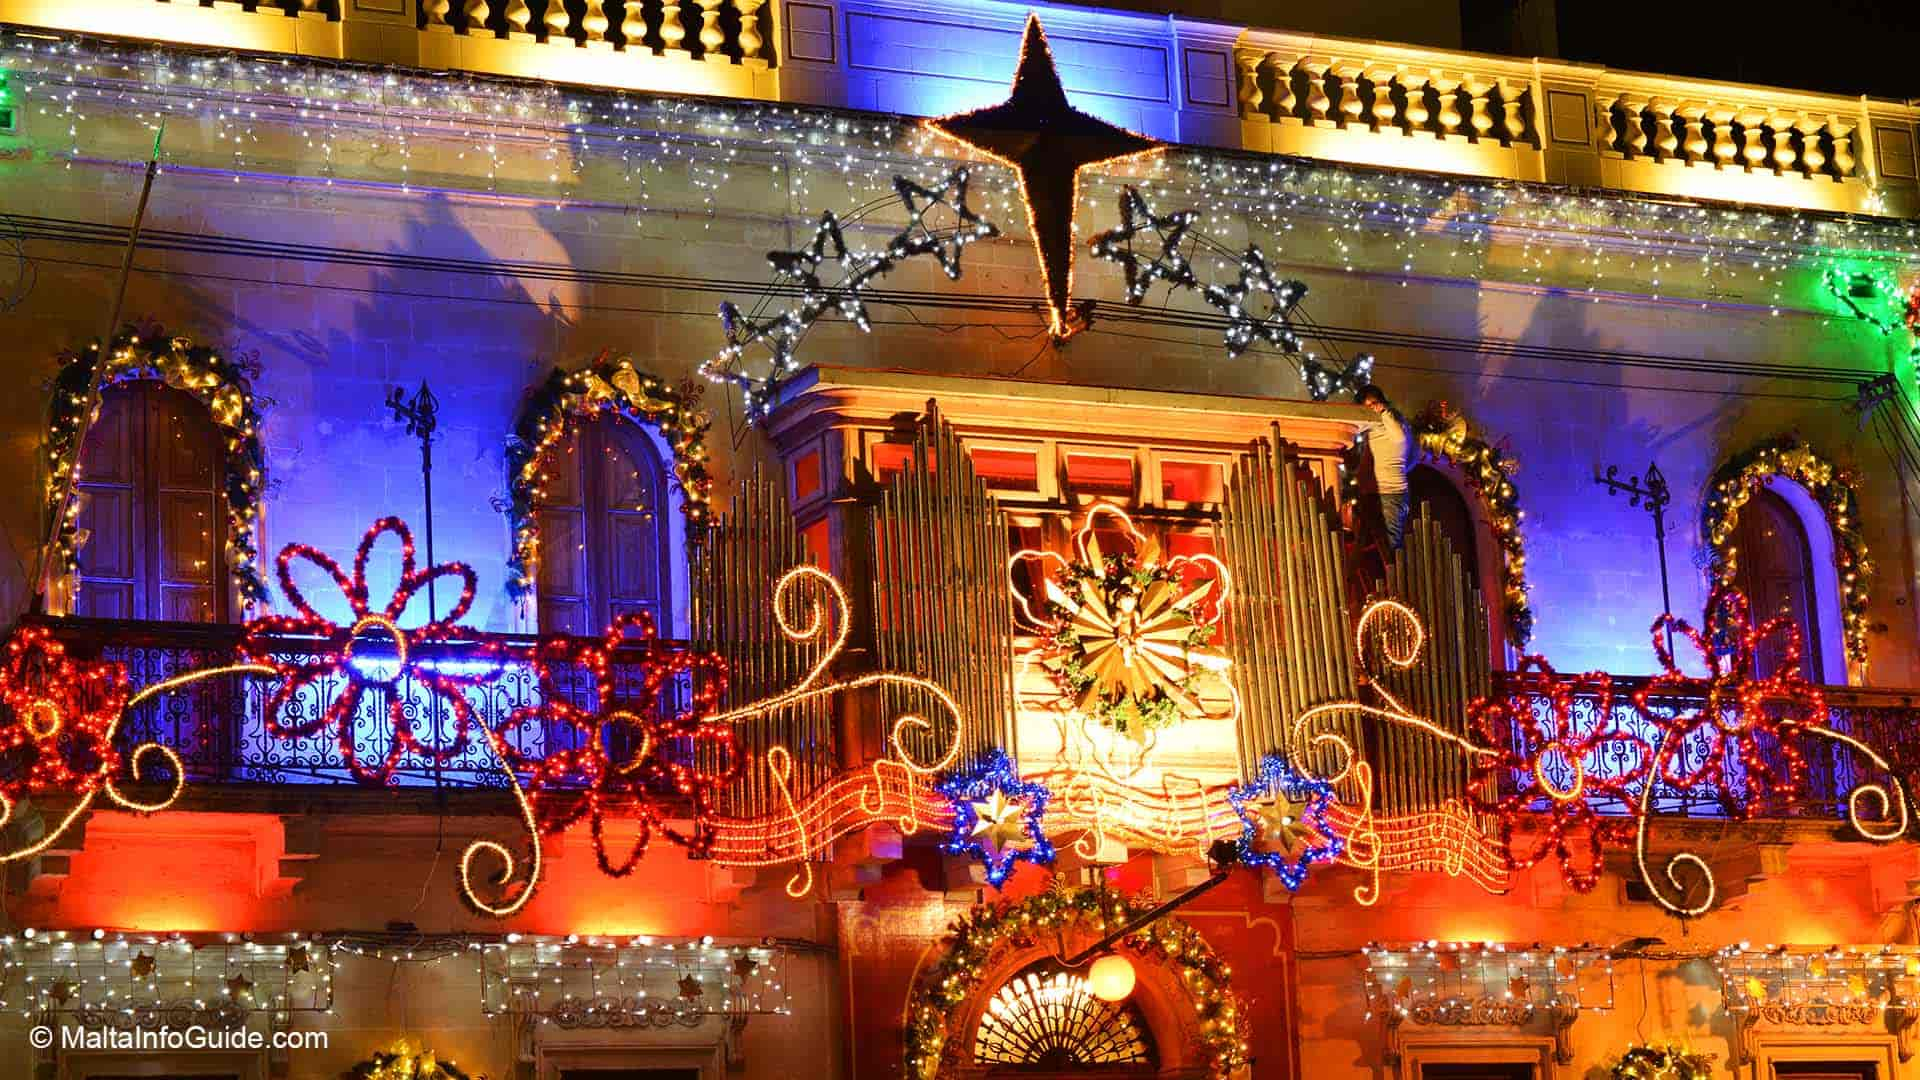 Things To Do Christmas 2019.Activities In Malta December 2019 Malta Info Guide